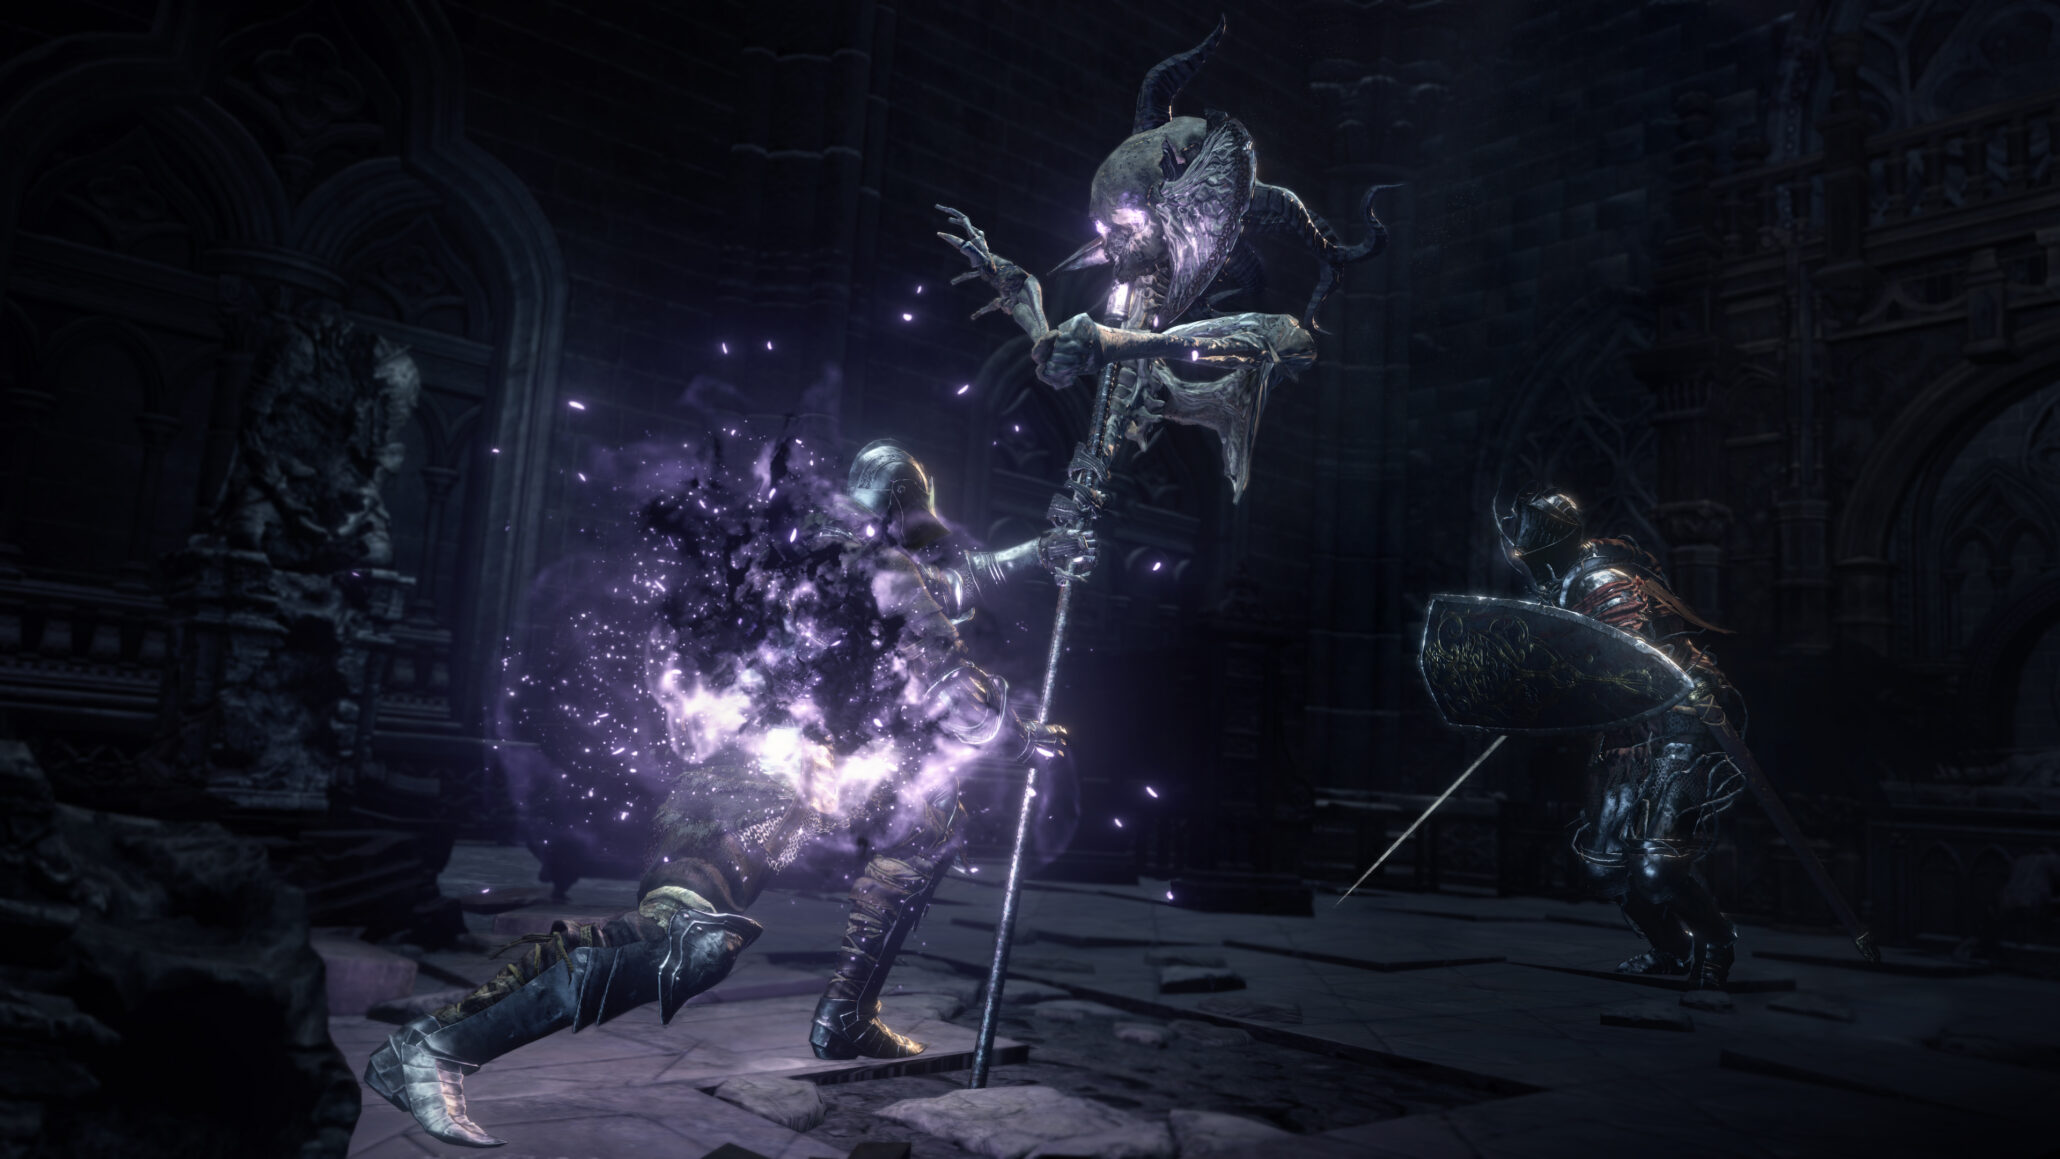 Dark Souls 3 The Ringed City Livestream To Show New Pvp Content